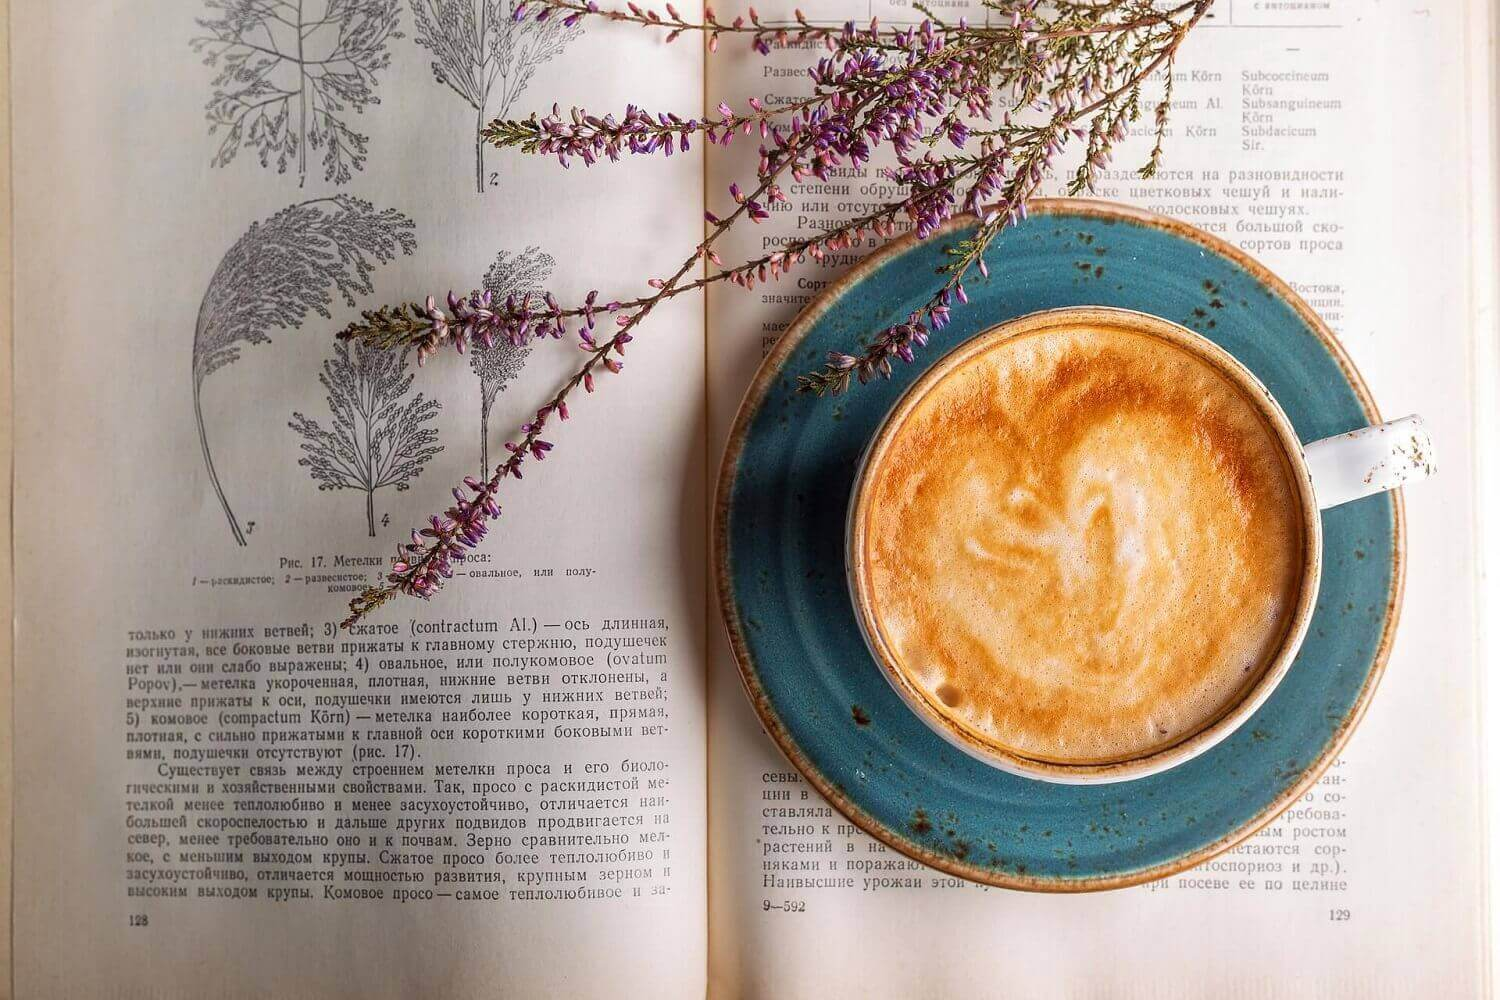 how-you-like-your-coffee-says-lot-about-you-pristine-organicscoffee-personalities-pristine-organics